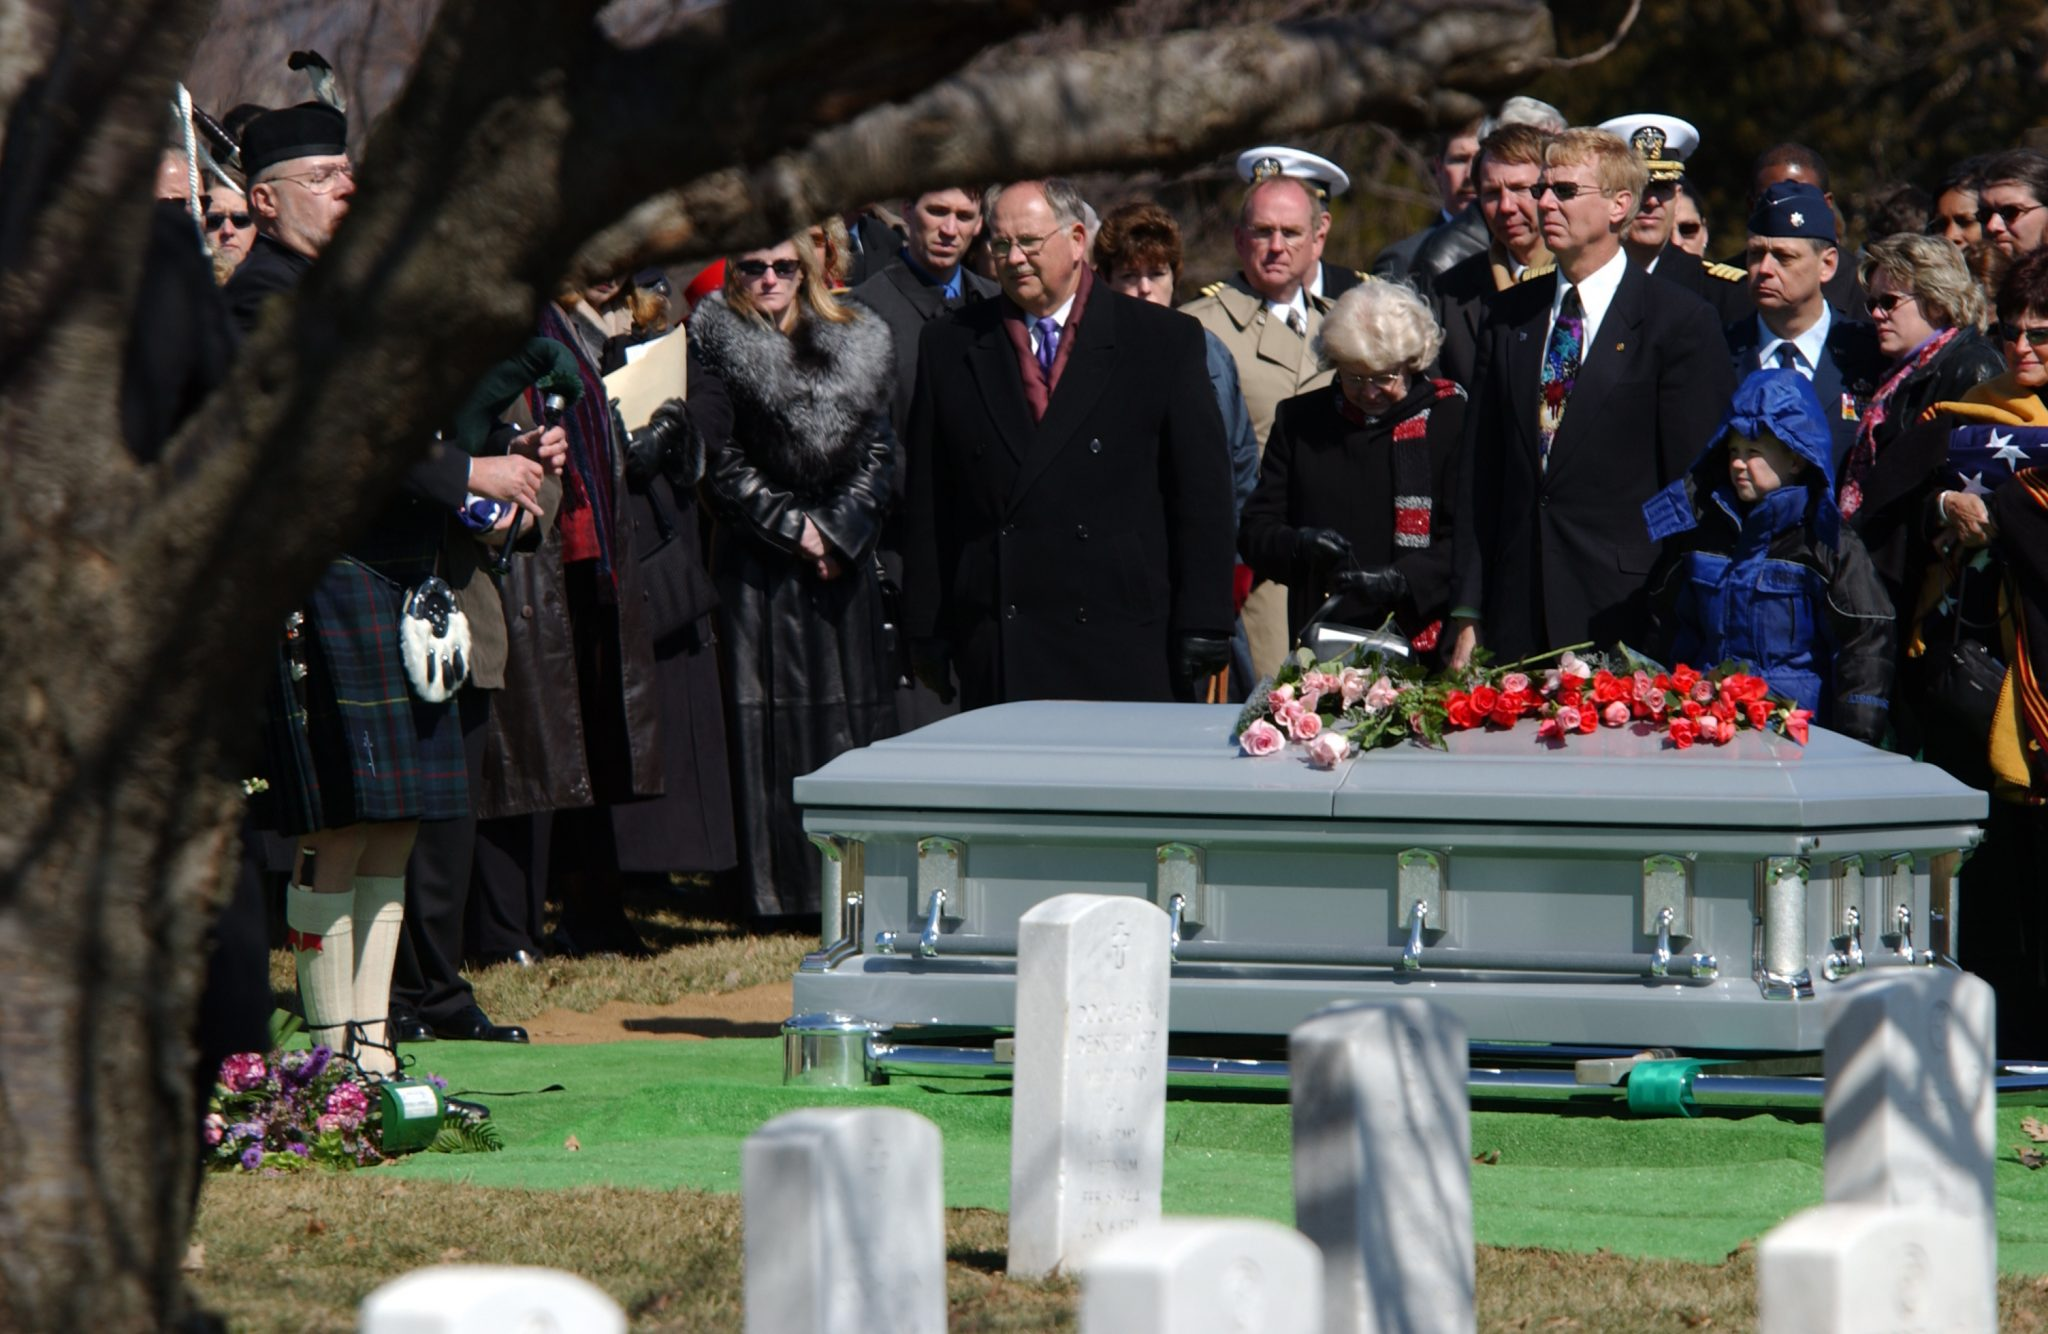 Image of Orlando Funeral Service